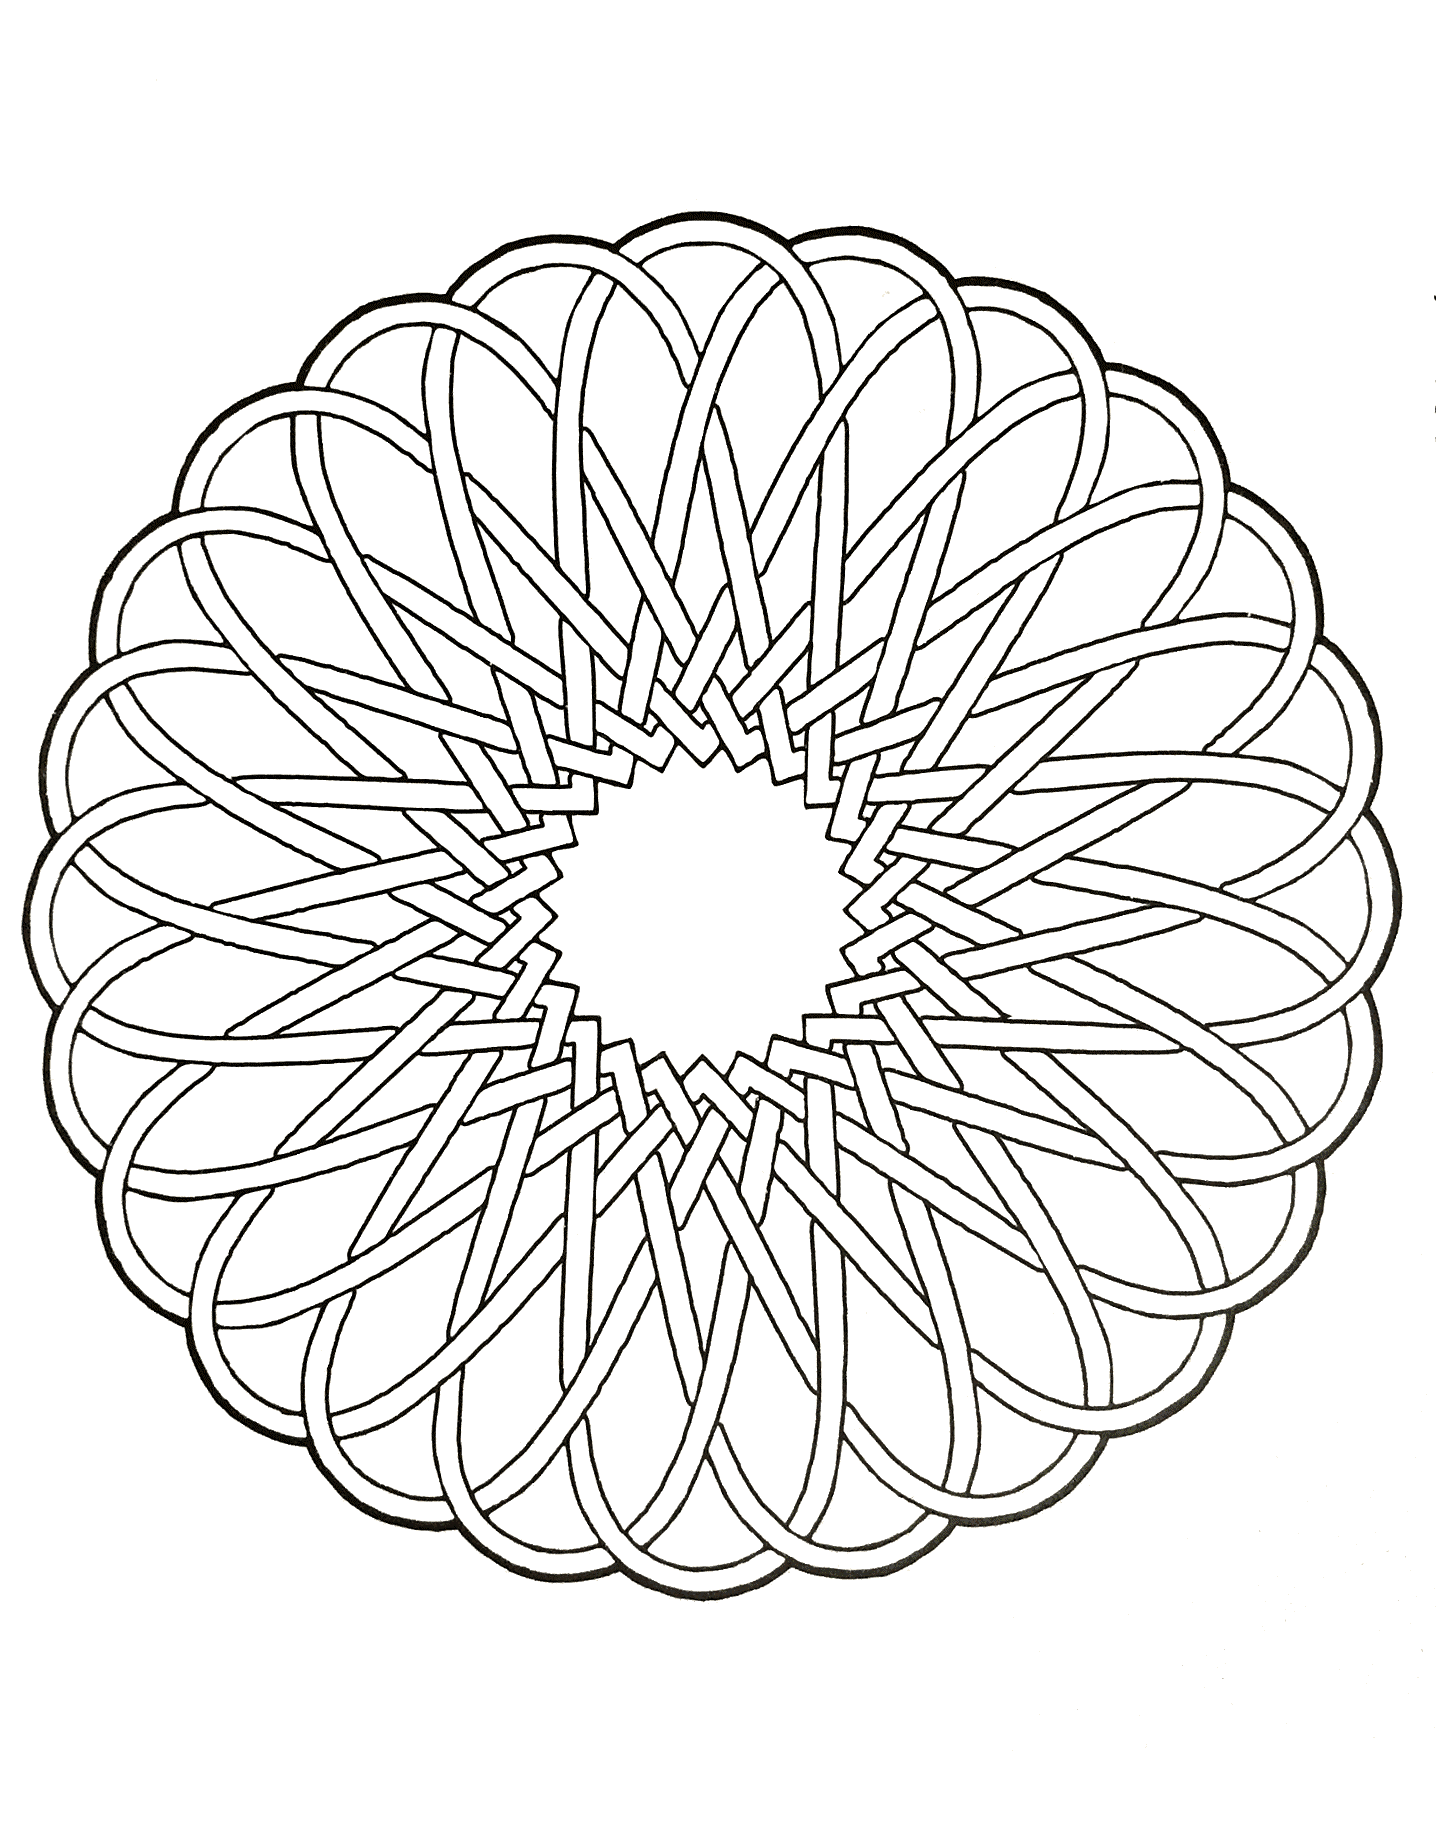 free coloring page mandalas to download for free 12